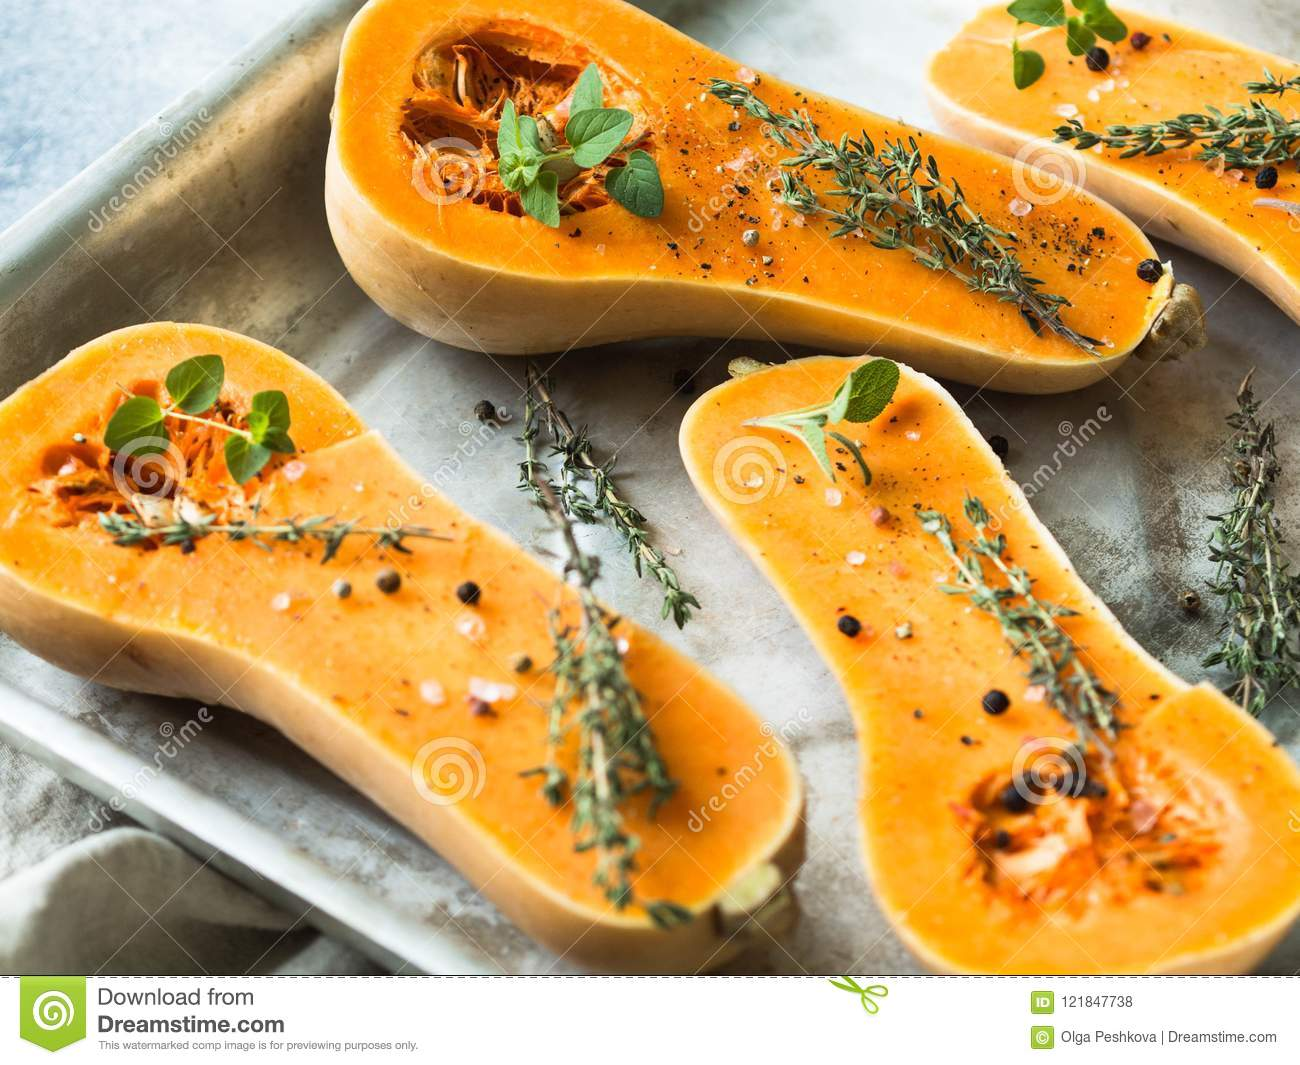 Orange fresh pumpkin cooking with spice and herbs. cut pumpkin slices on a baking sheet. Fresh orange muscat gourd cut in half, re